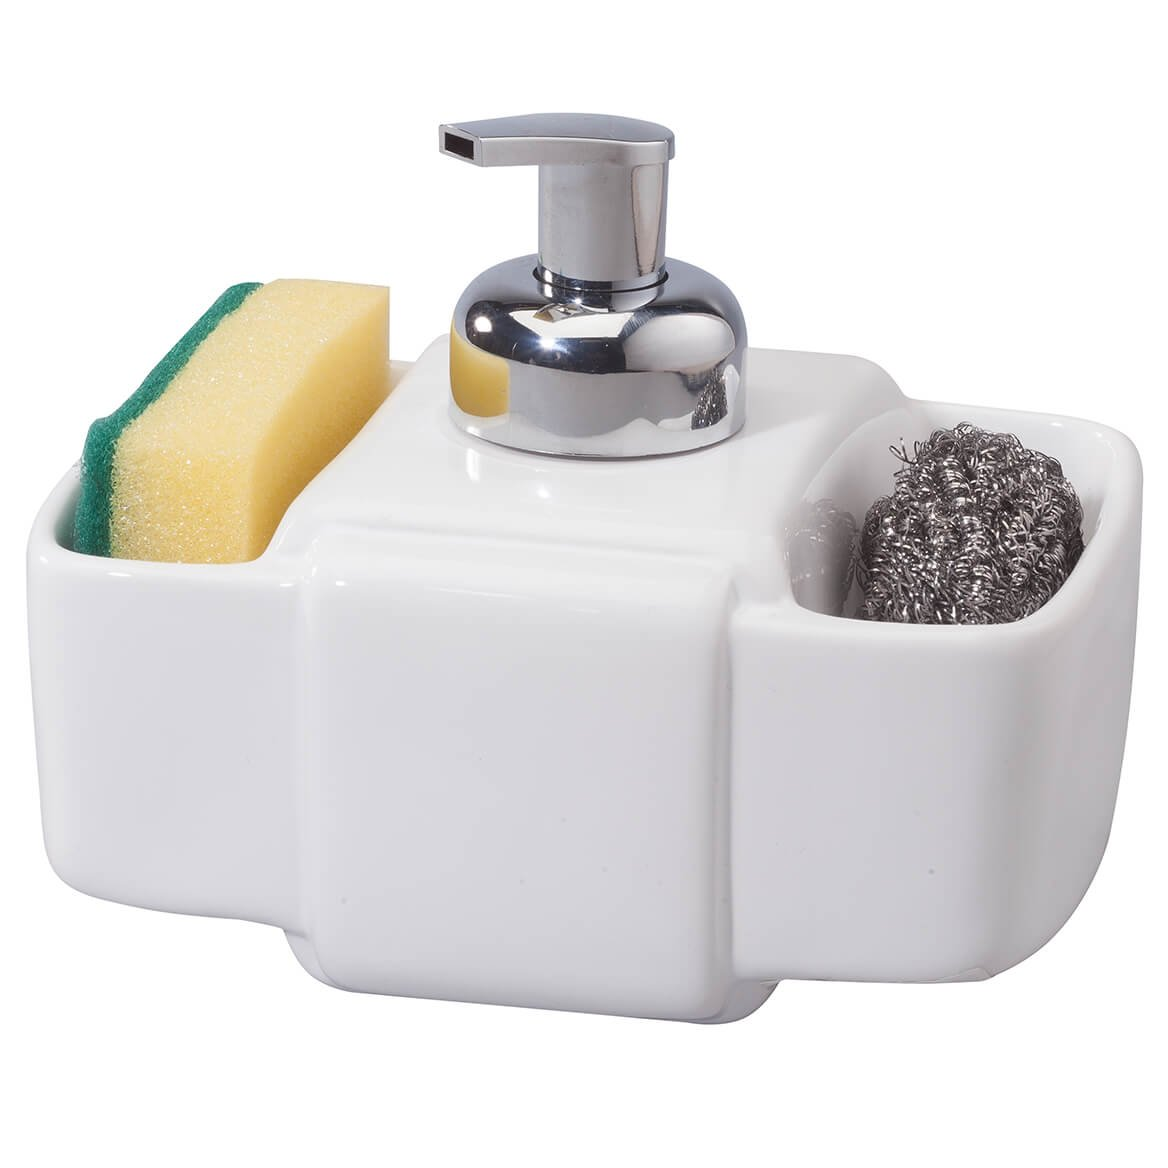 Home Essentials White Ceramic 3 Section Liquid Soap Dispenser with Sponge Holders, 7.5'' L